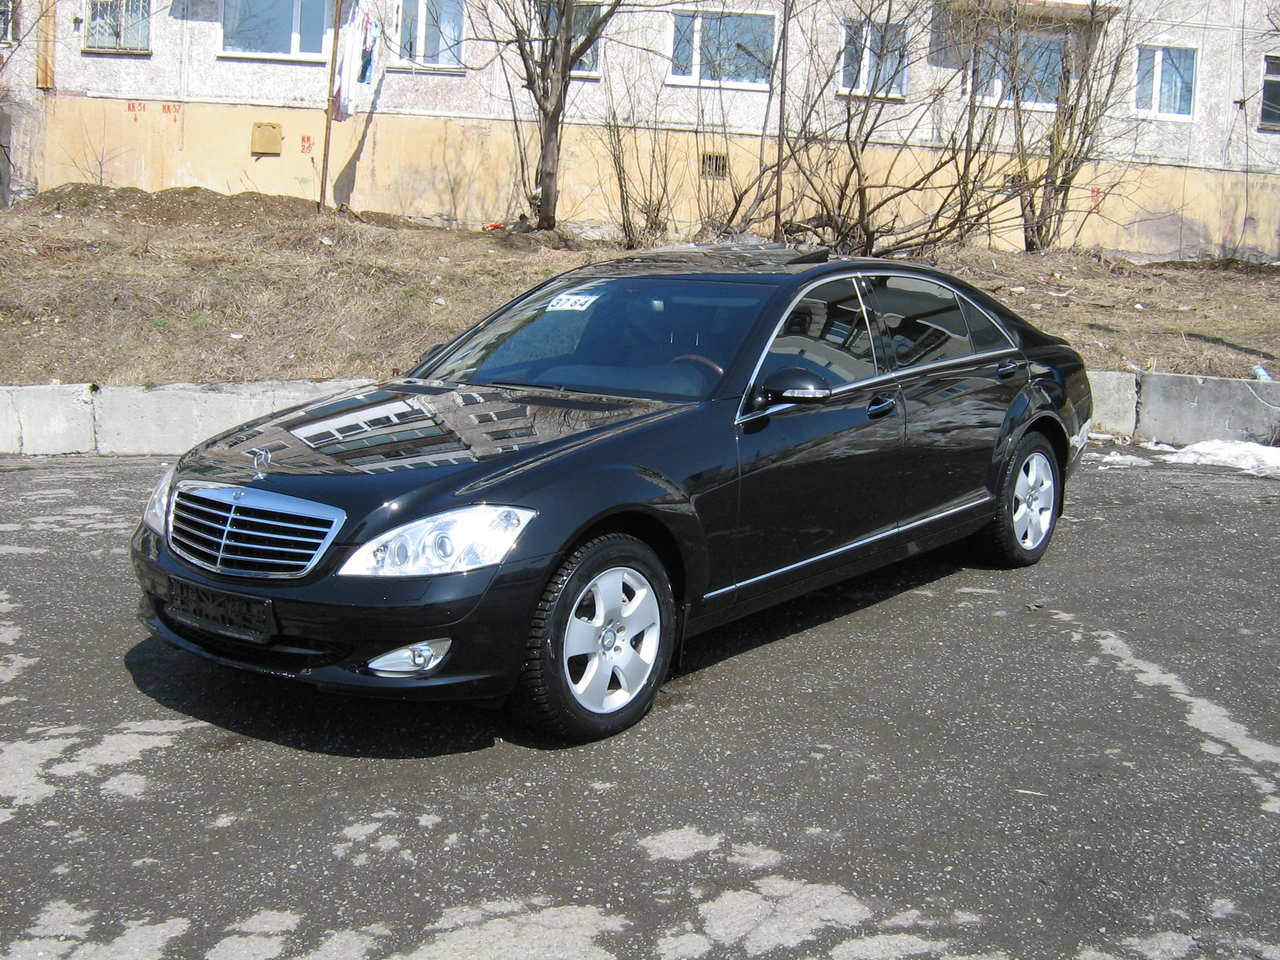 used 2008 mercedes benz s class photos 5500cc gasoline fr or rr automatic for sale. Black Bedroom Furniture Sets. Home Design Ideas